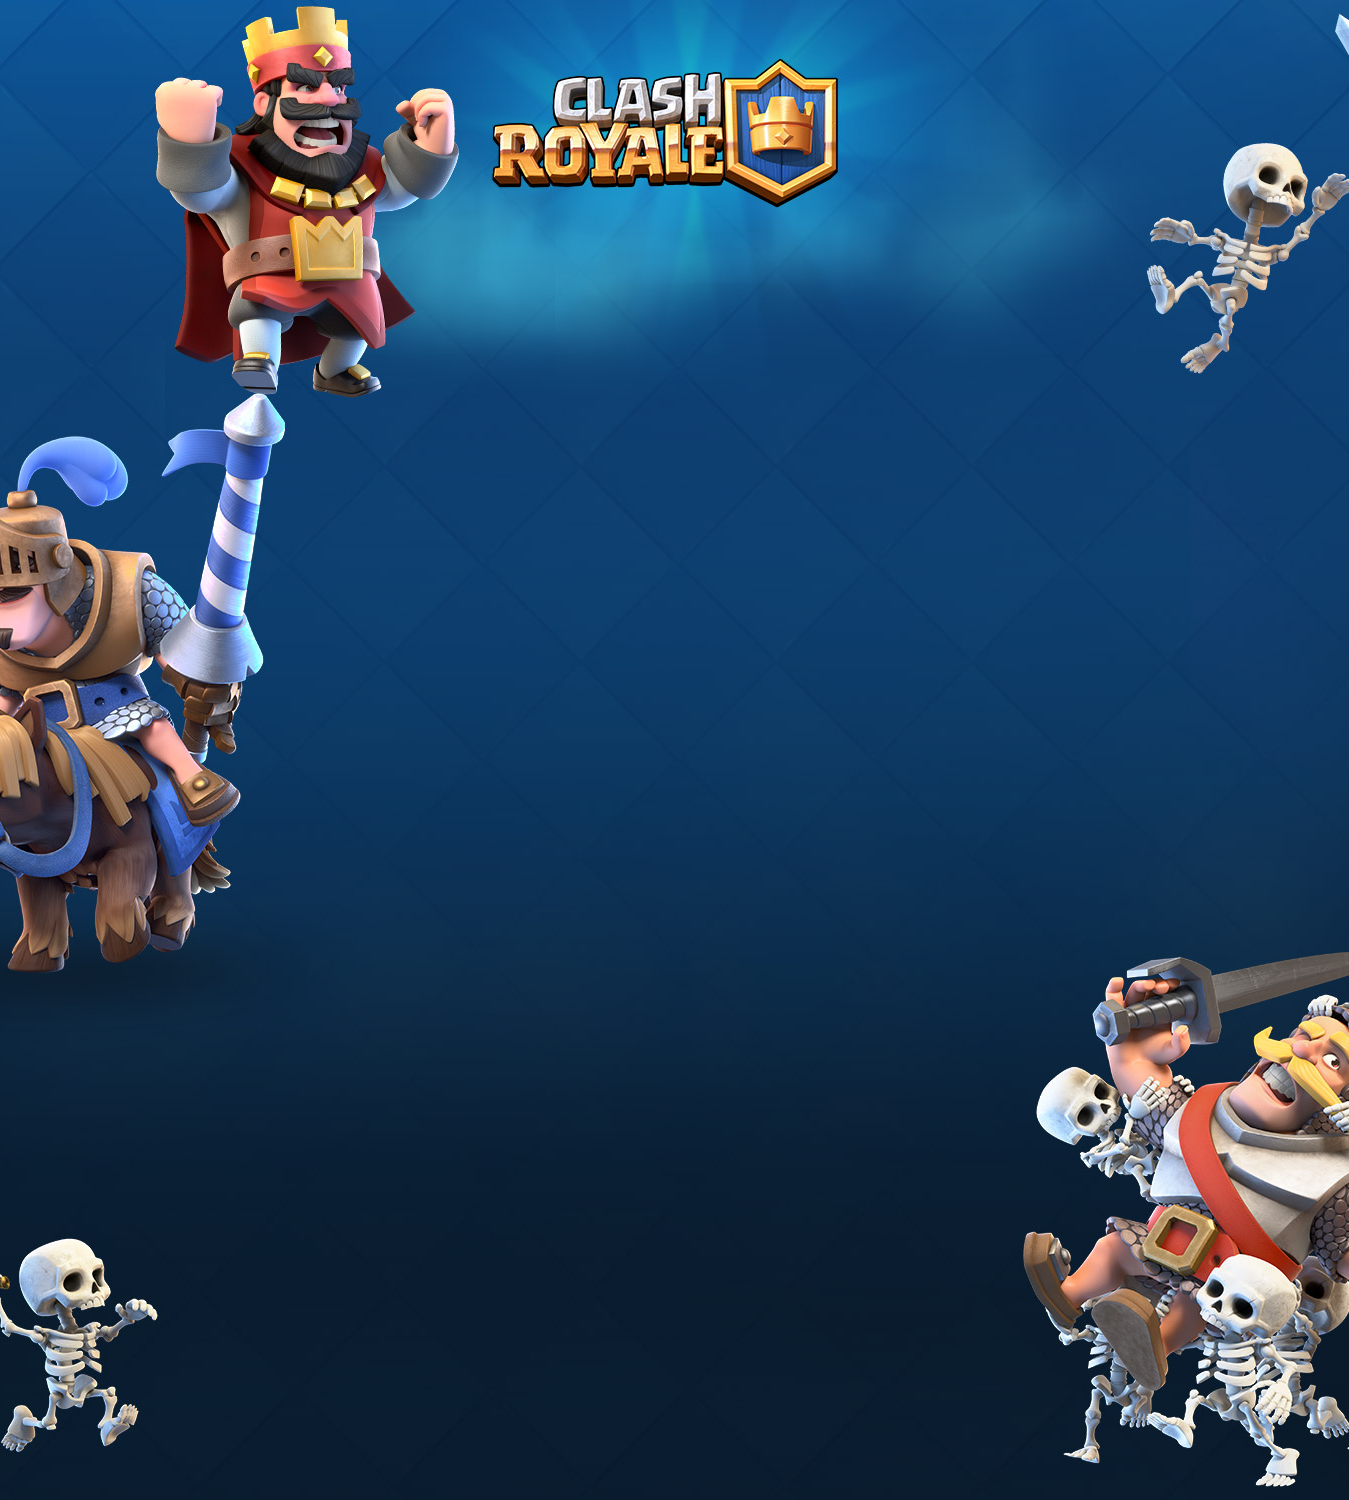 Image - Clash Royale Forum Background.png | Clash Royale Wikia ...